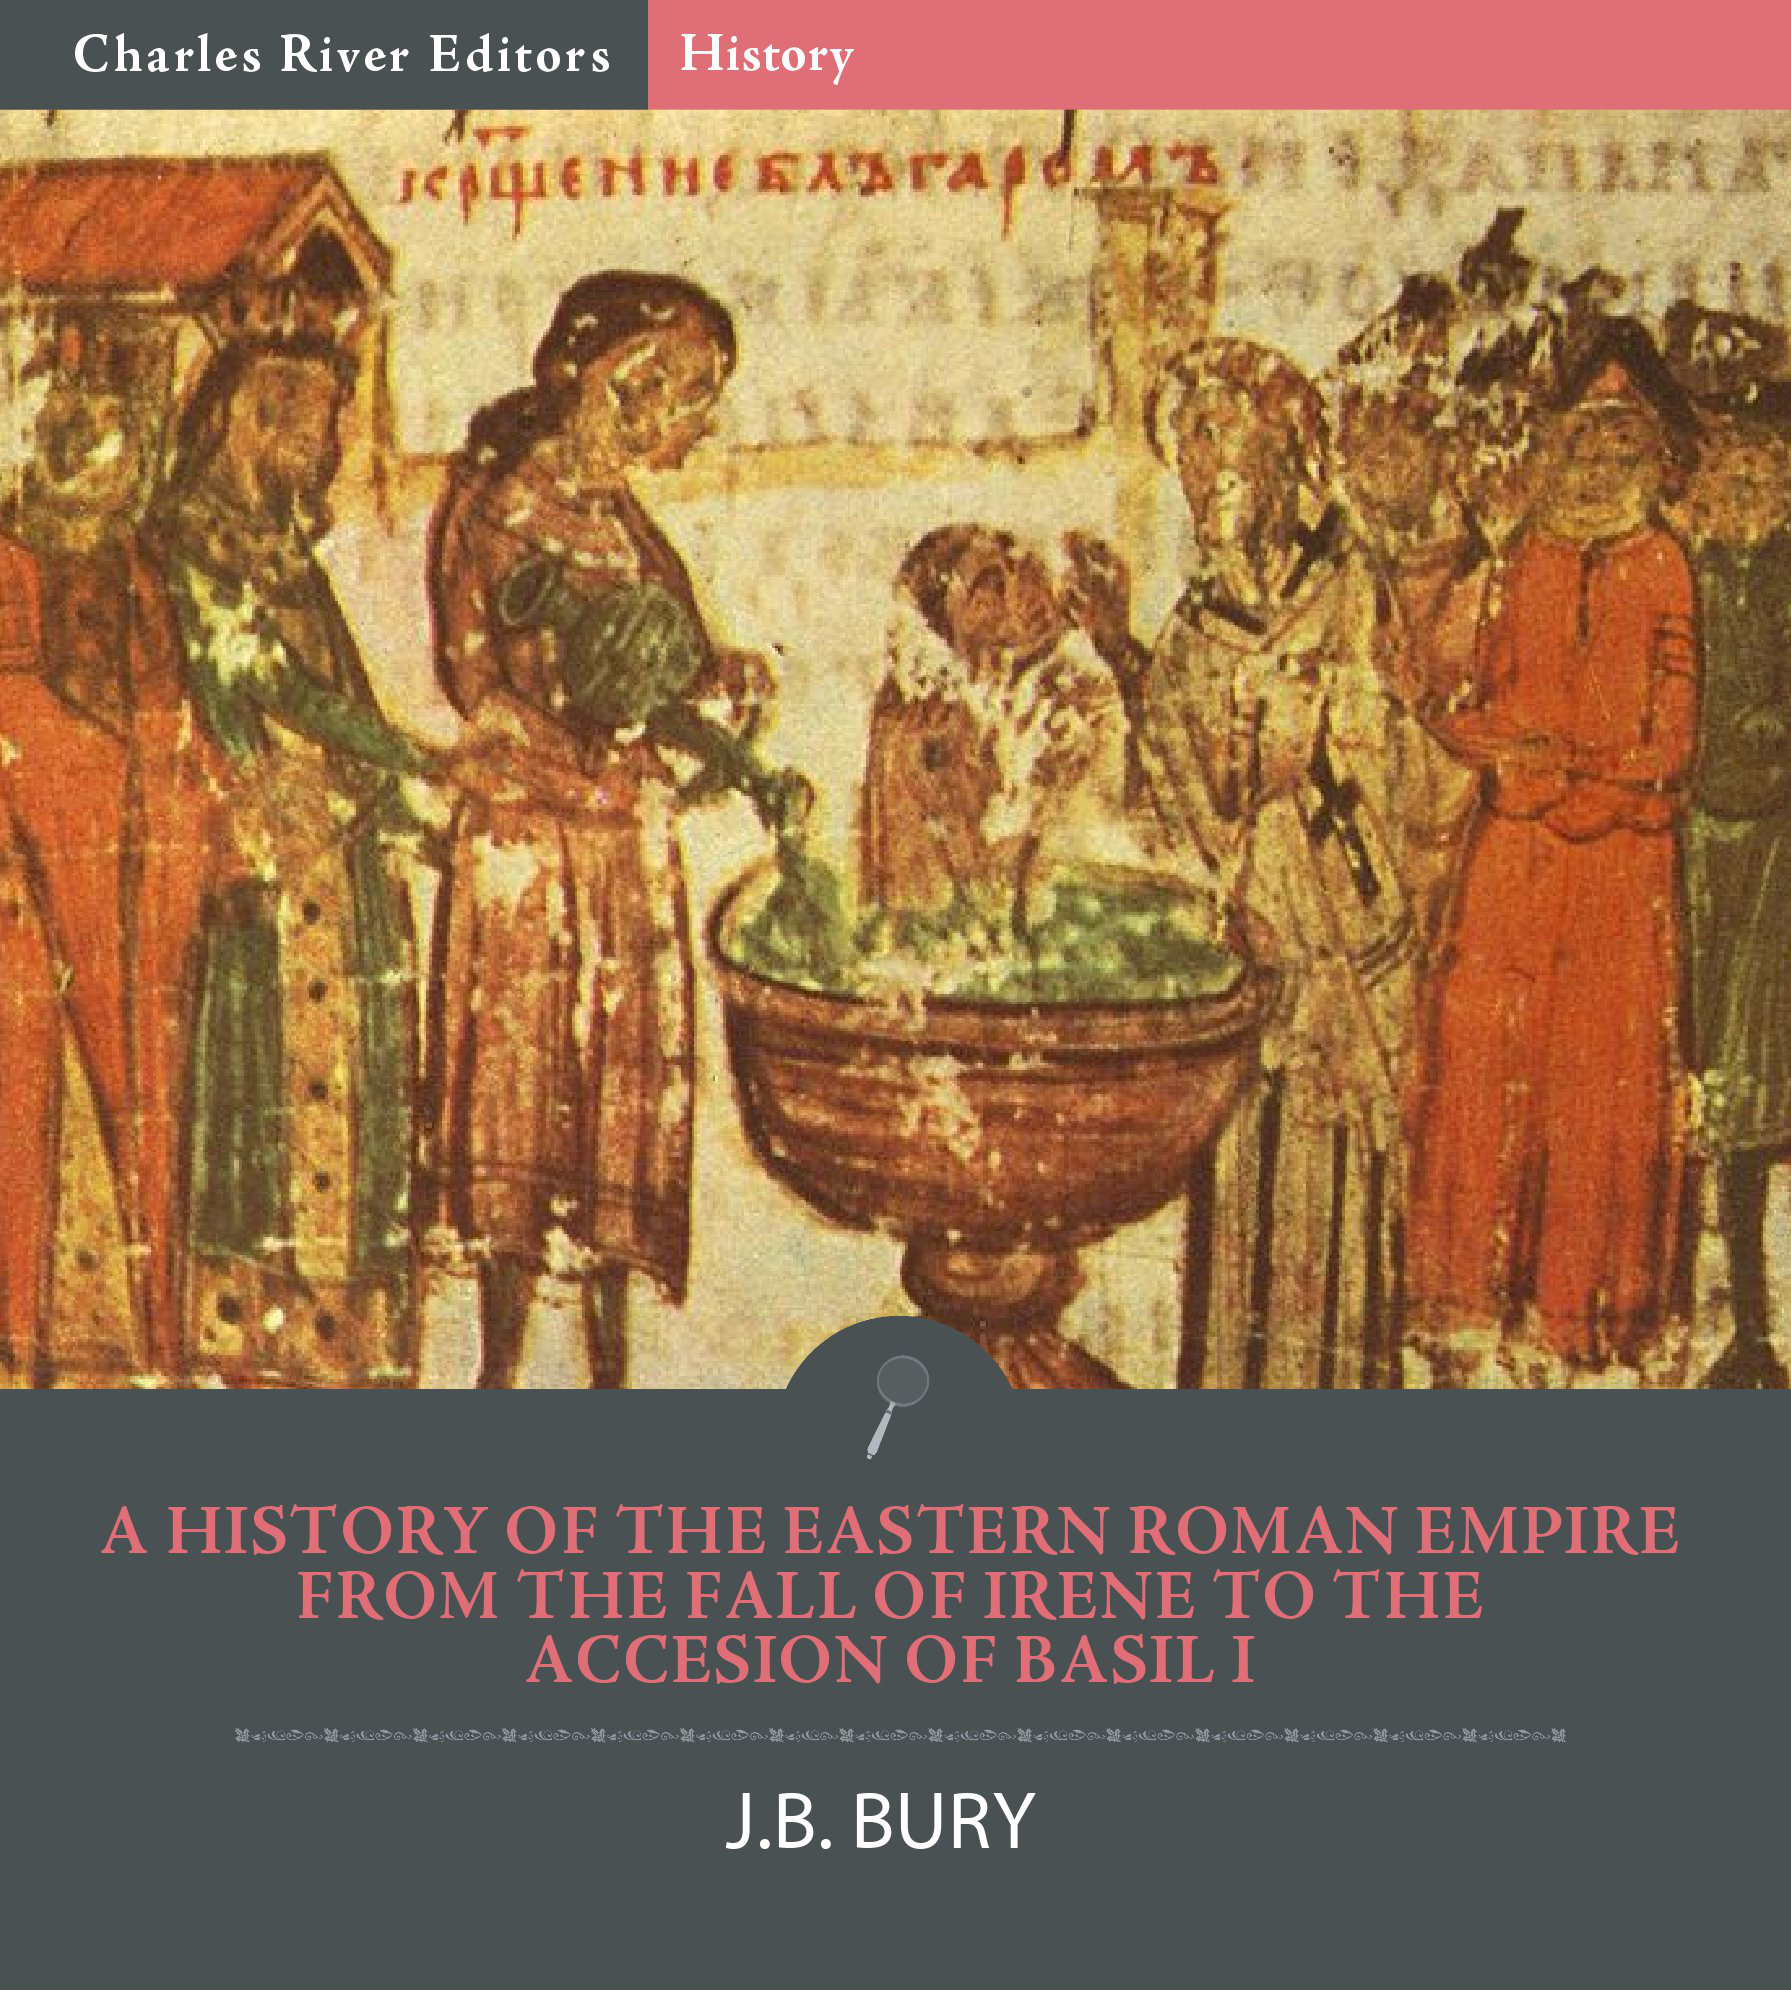 A History of the Eastern Roman Empire from the Fall of Irene to the Accesion of Basil I By: J.B. Bury, Charles River Editors